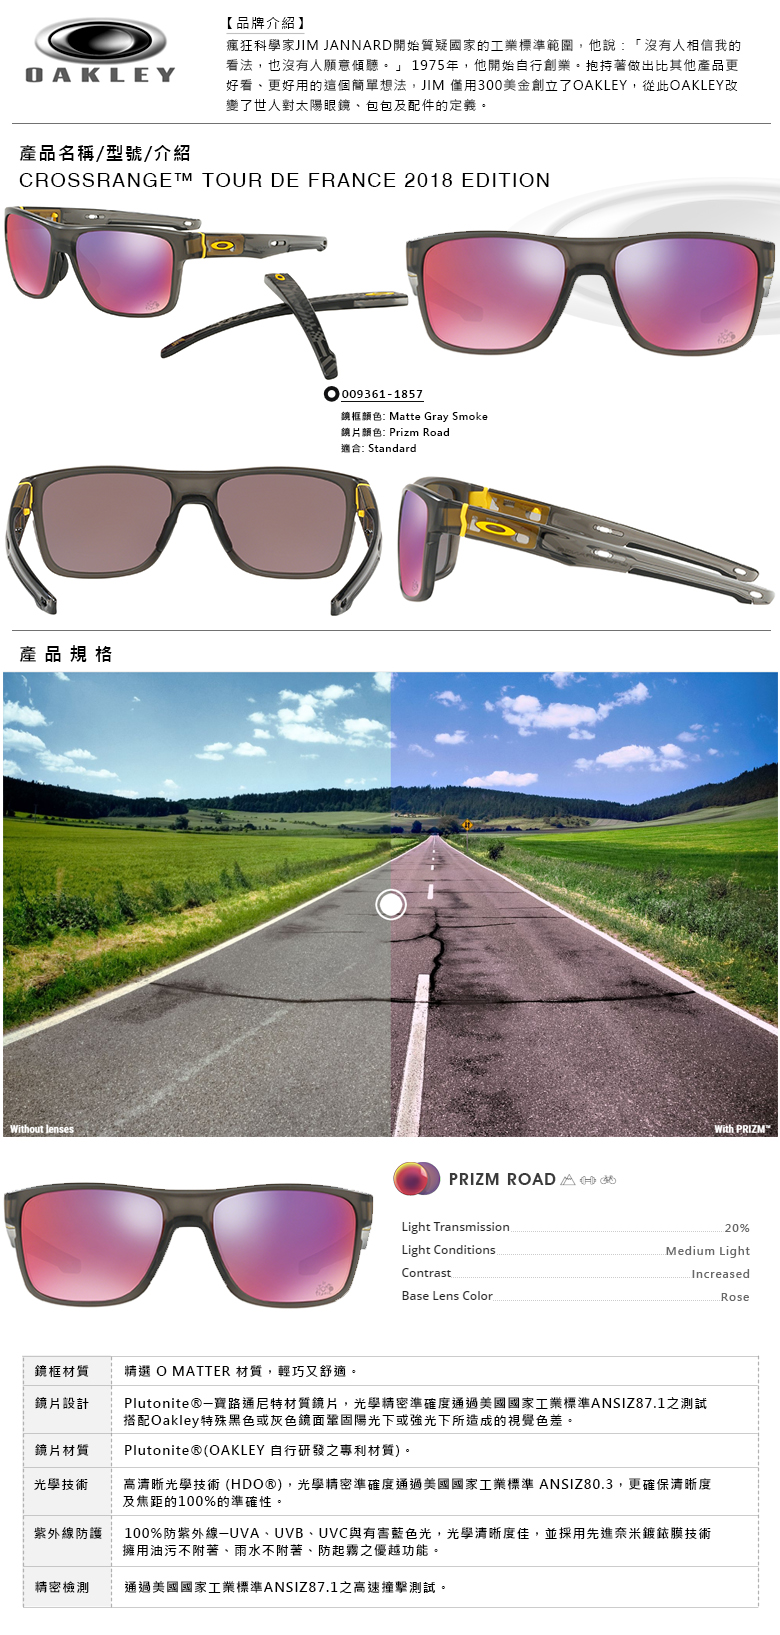 2cb8633899 OAKLEY CROSSRANGE™ TOUR DE FRANCE 2018 EDITION 2018 環法紀念款質感半透明.  Description  Shipping and Warranty  Return. 商品出貨流程